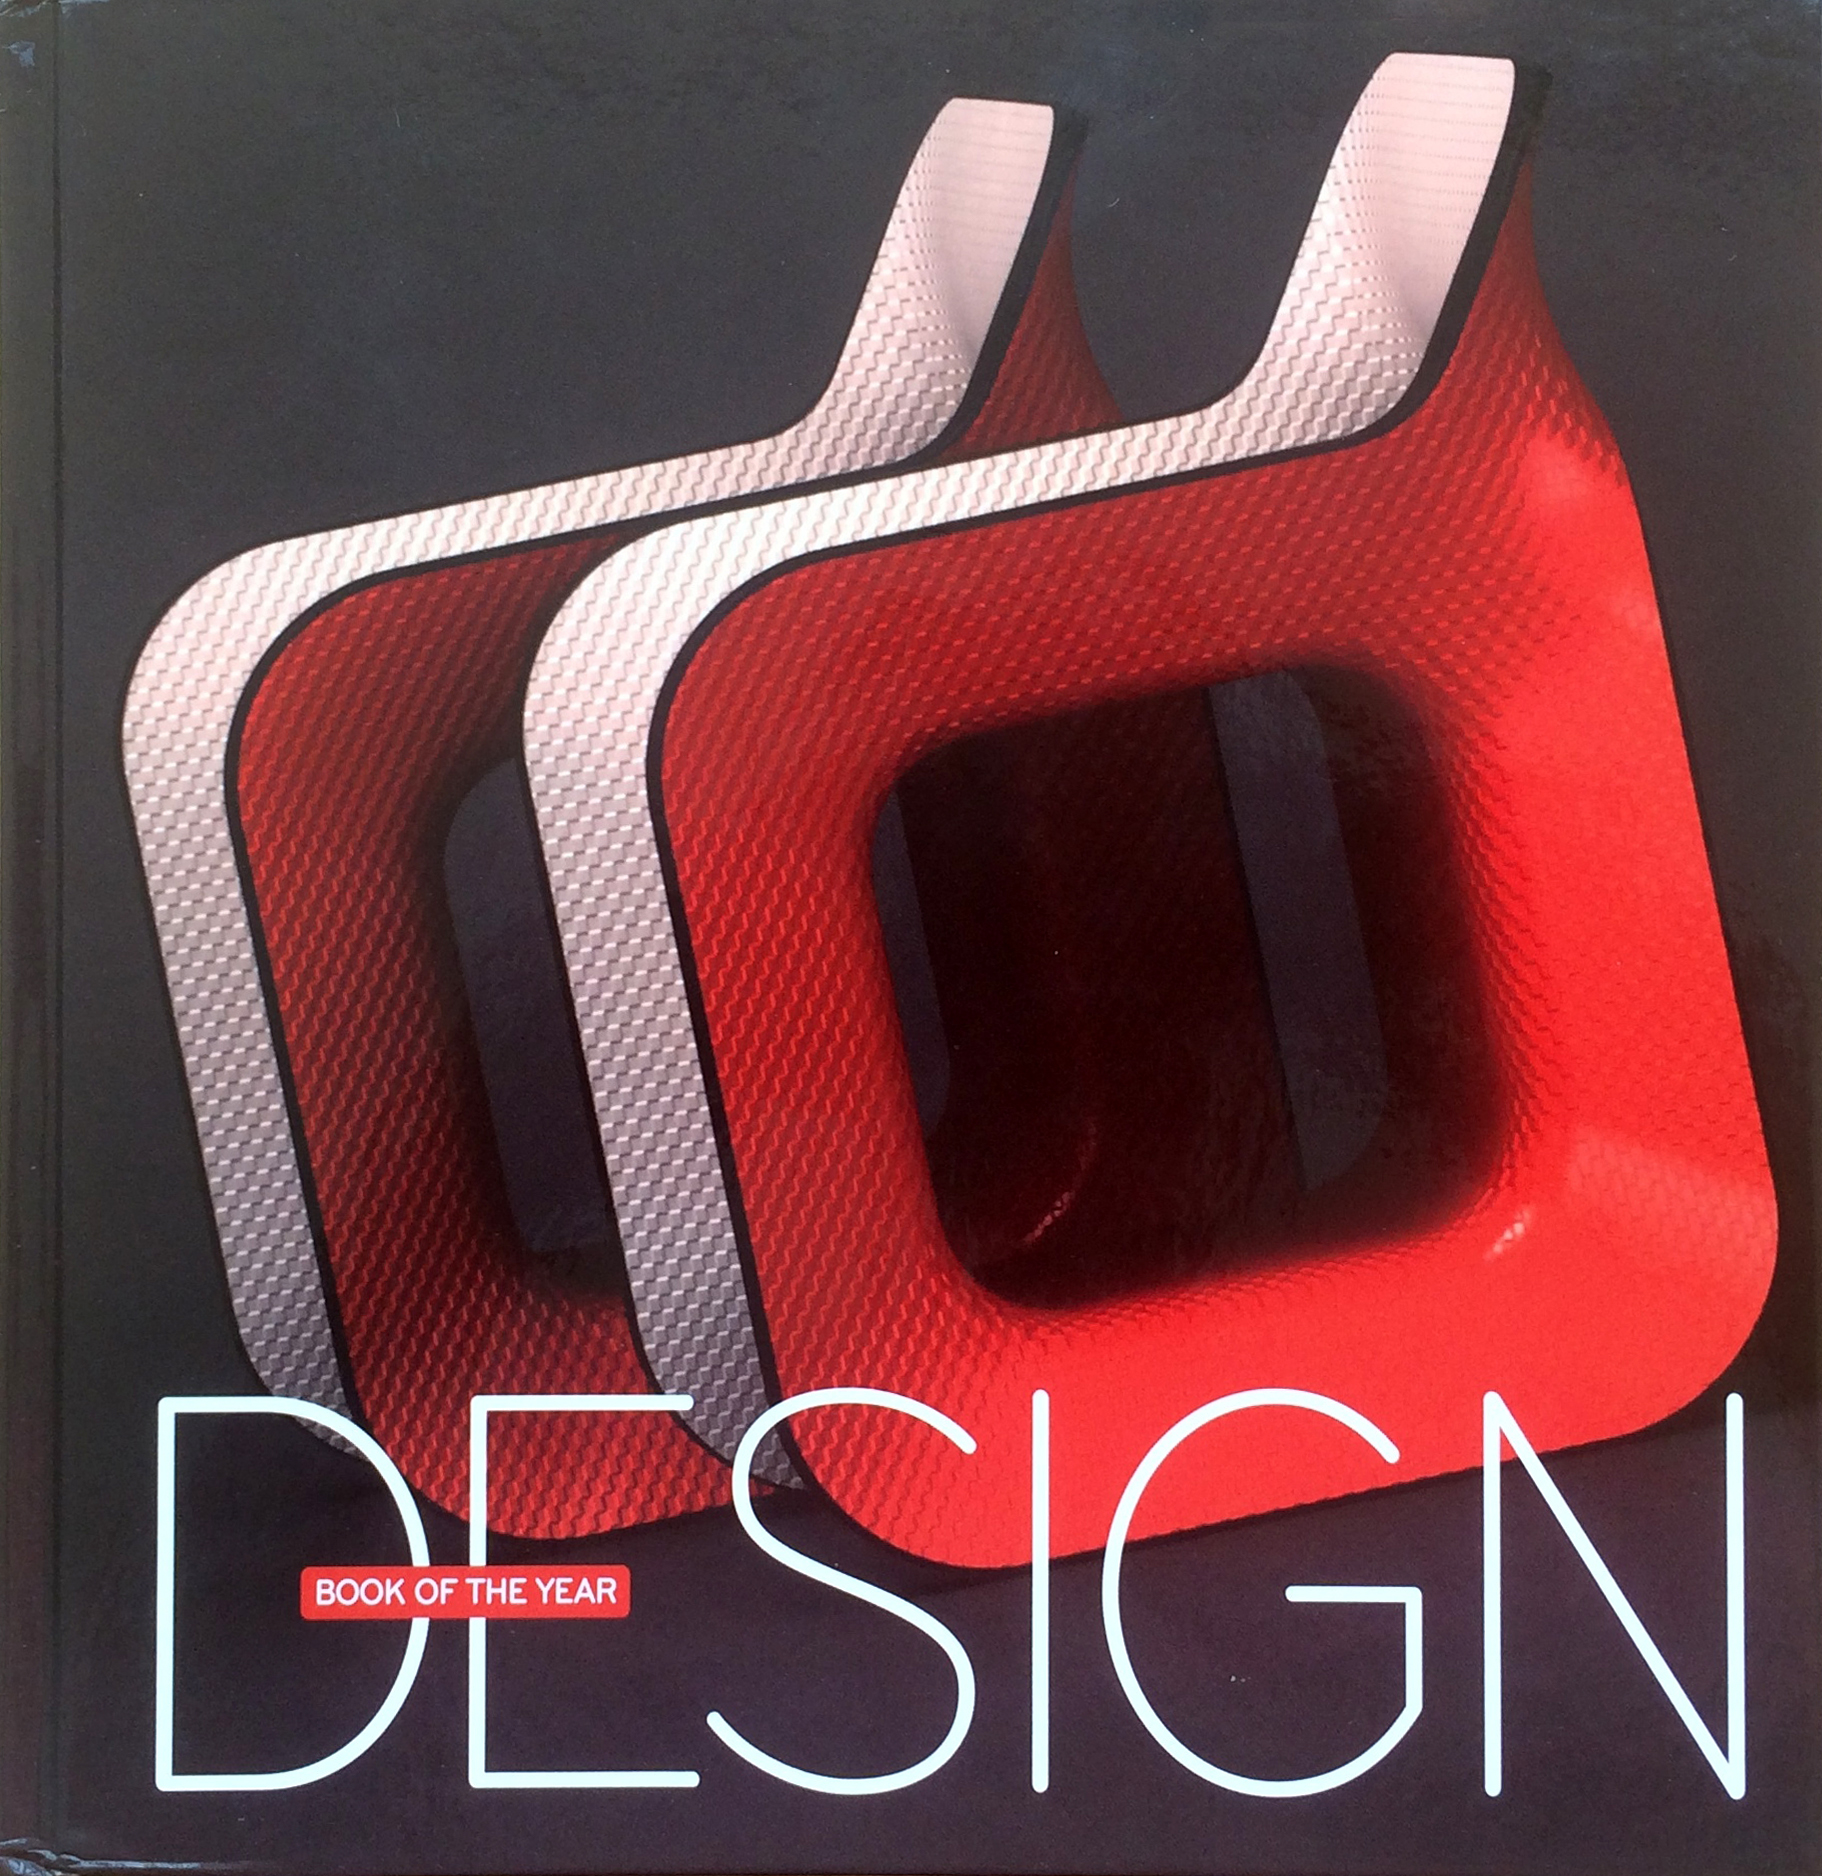 Design and Design Book of the Year Volume 6